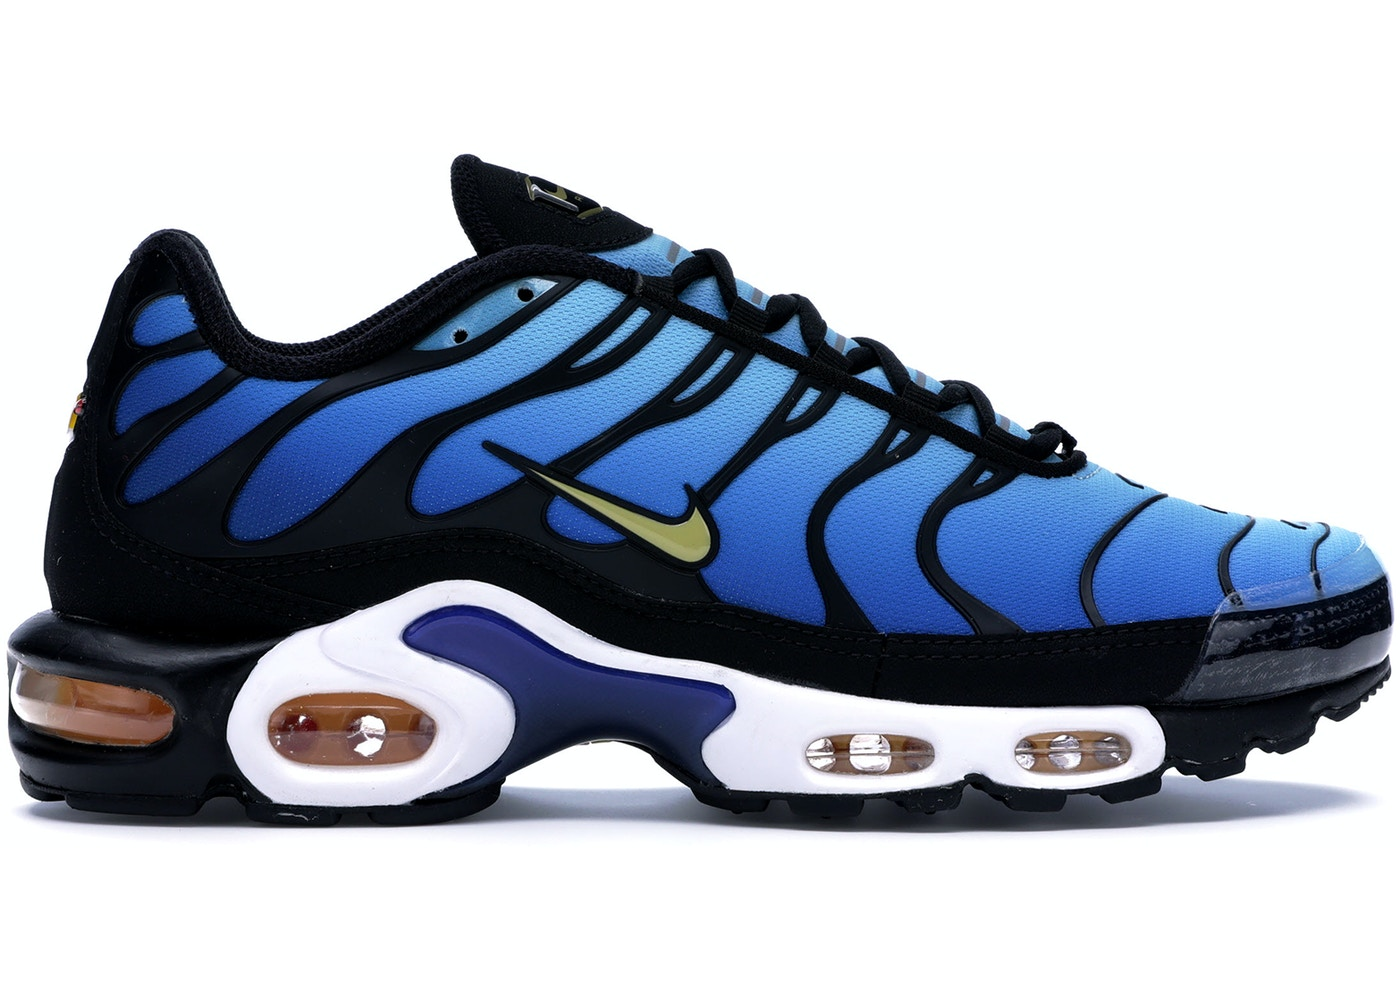 info for 8f0d8 cee49 Air Max Plus OG Hyper Blue (2018)